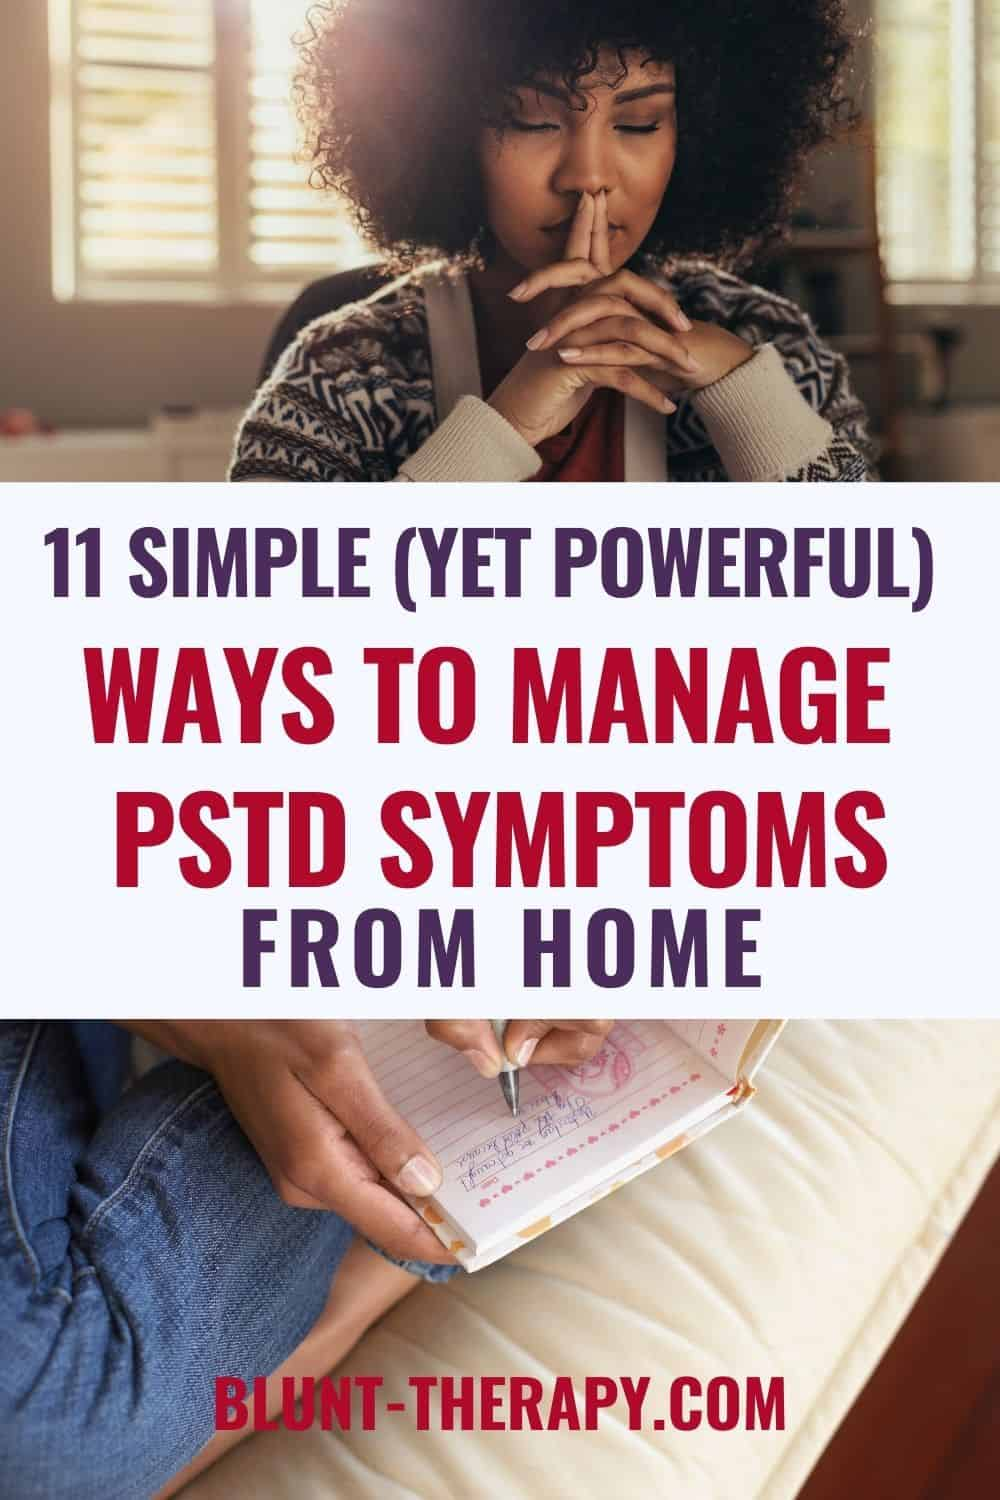 11 Simple But Powerful Ways To Manage PTSD Symptoms At home